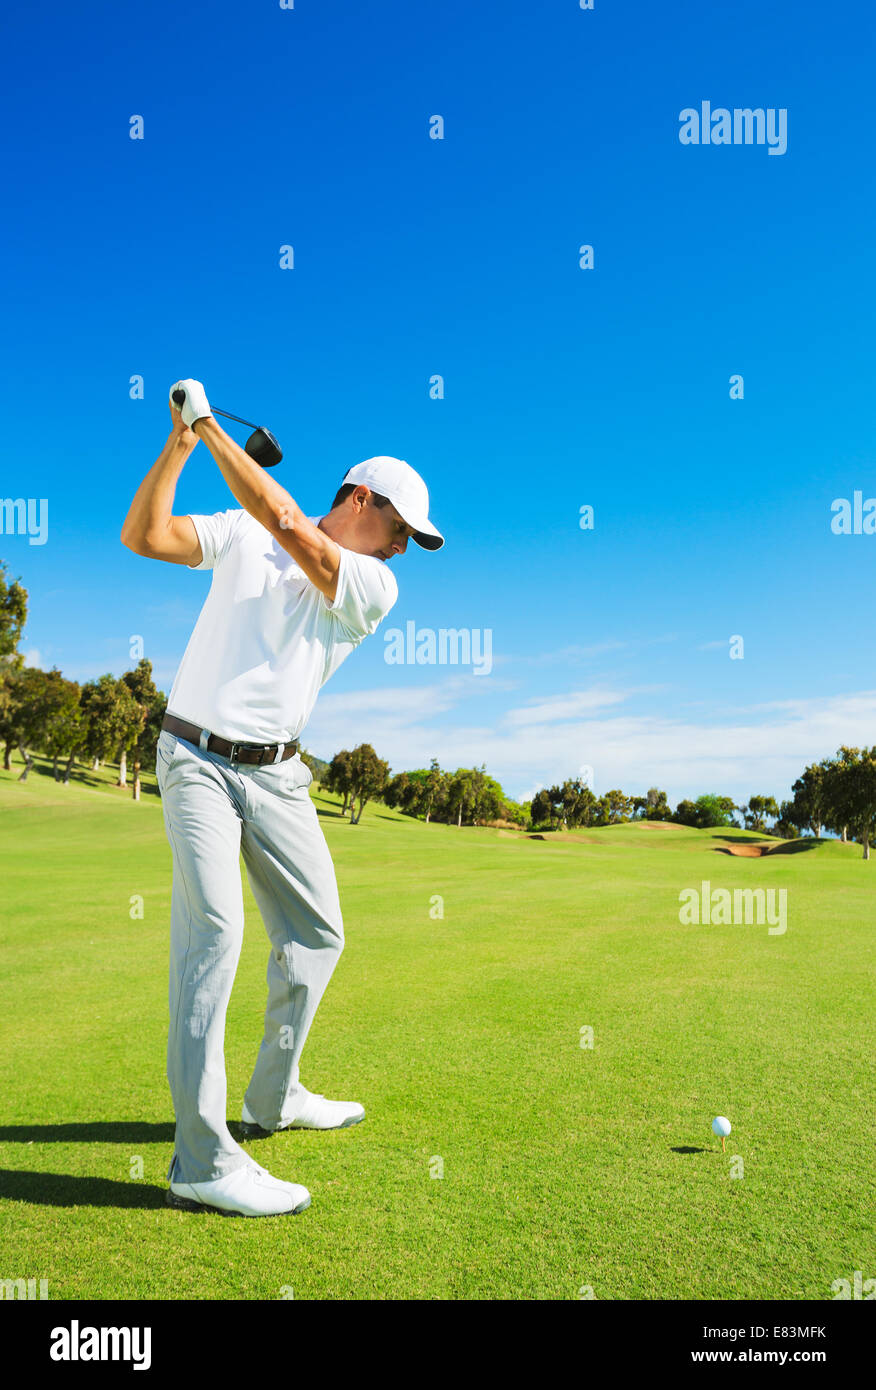 Golfer Hitting Golf Shot with Club on the Course - Stock Image